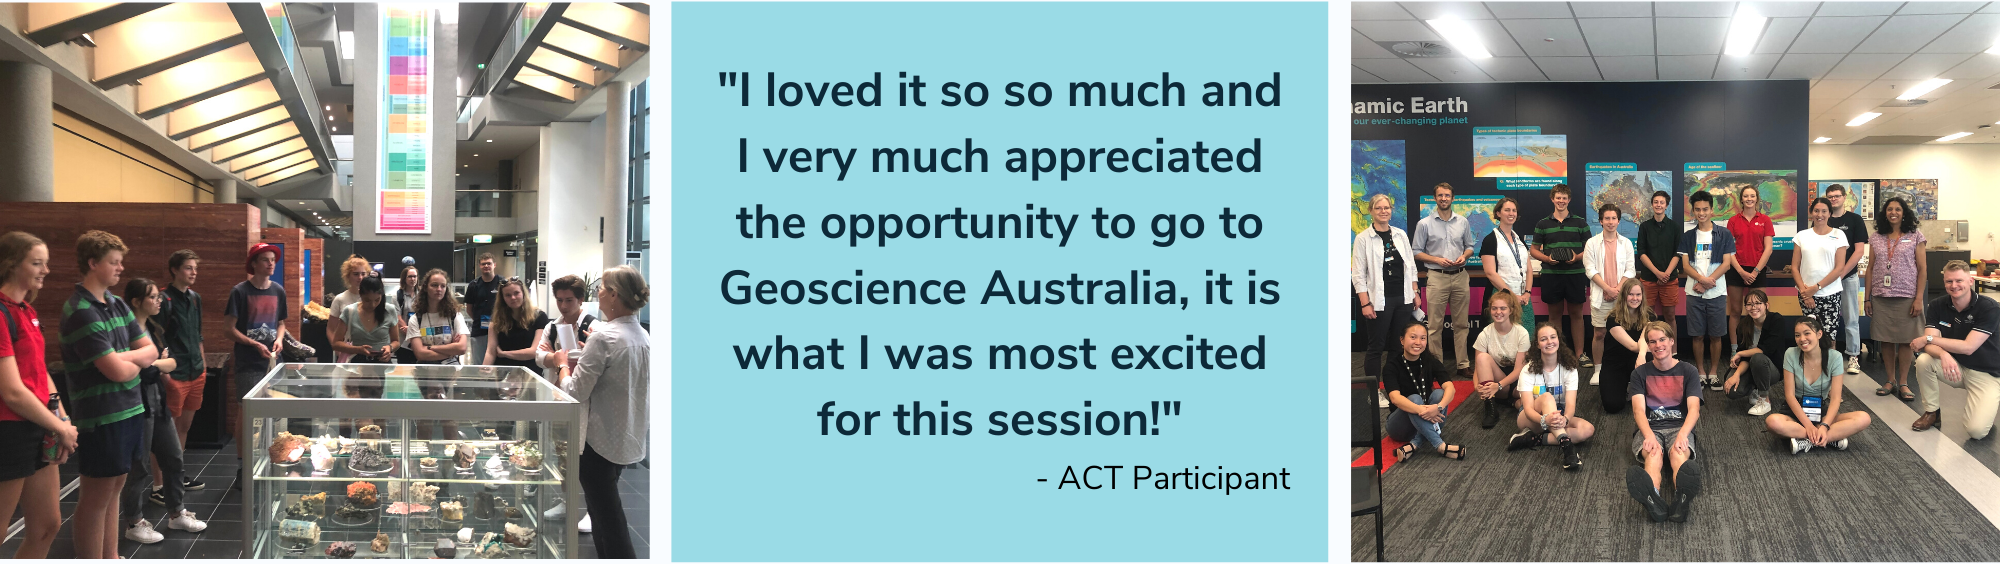 Three days of STEM in the ACT - content image